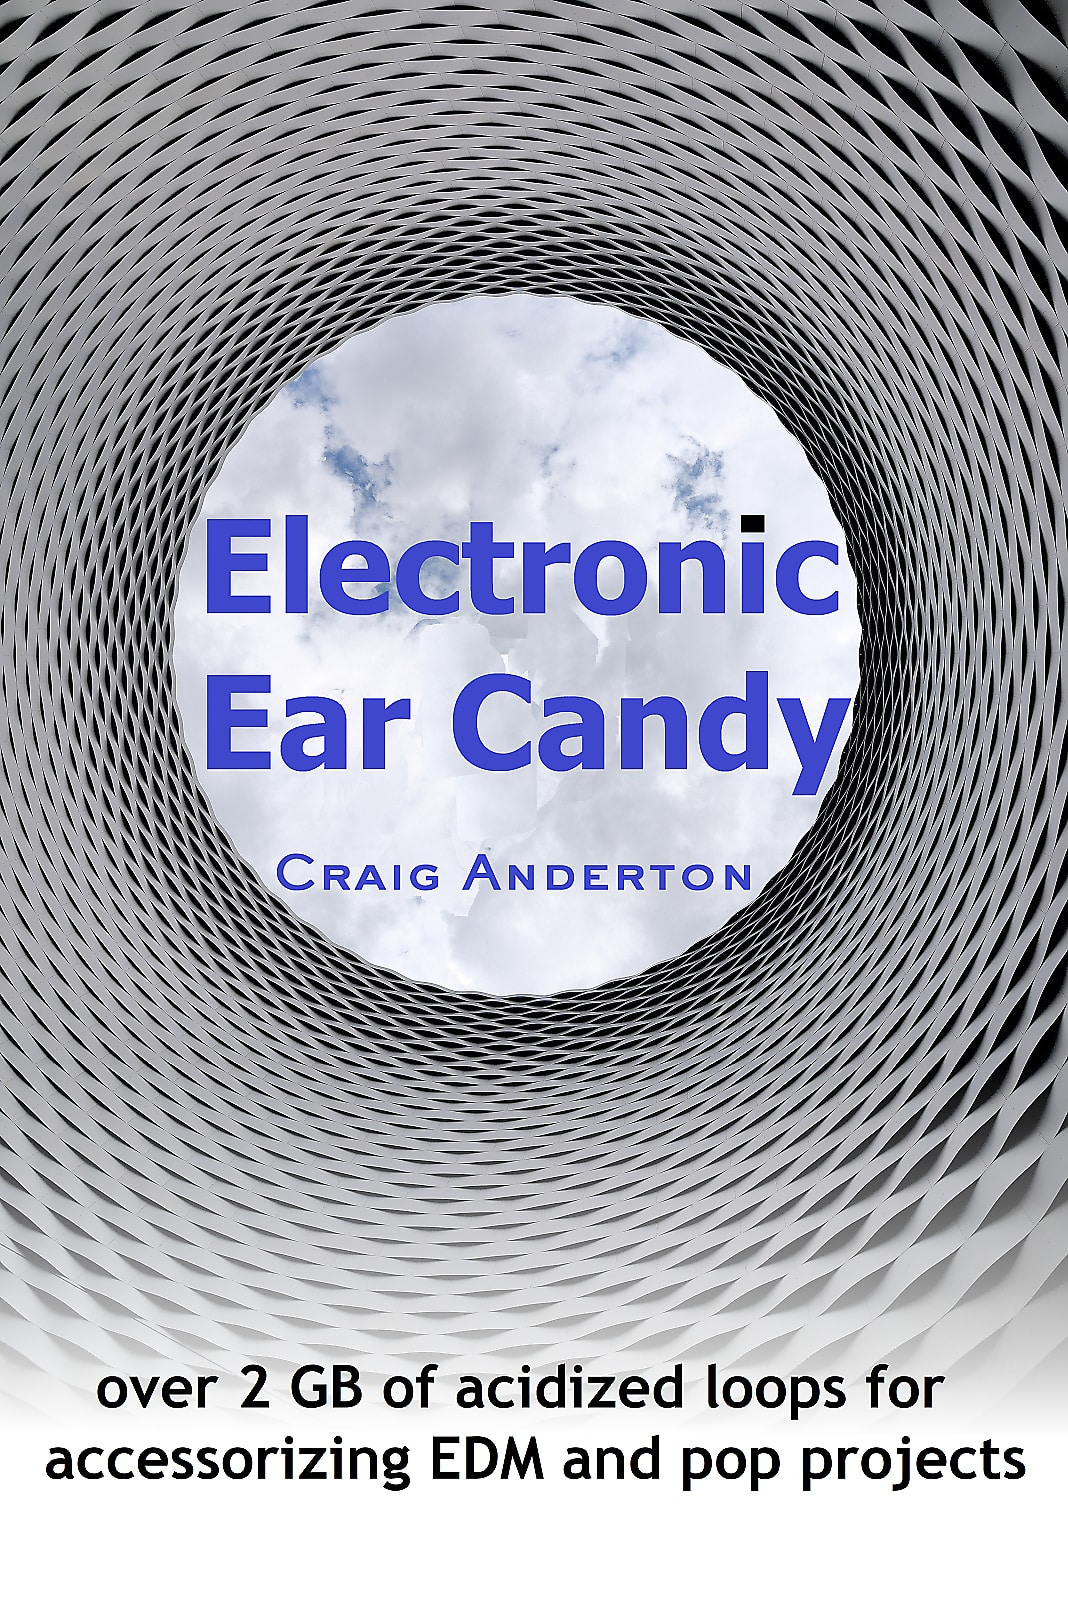 Electronic Ear Candy by Craig Anderton